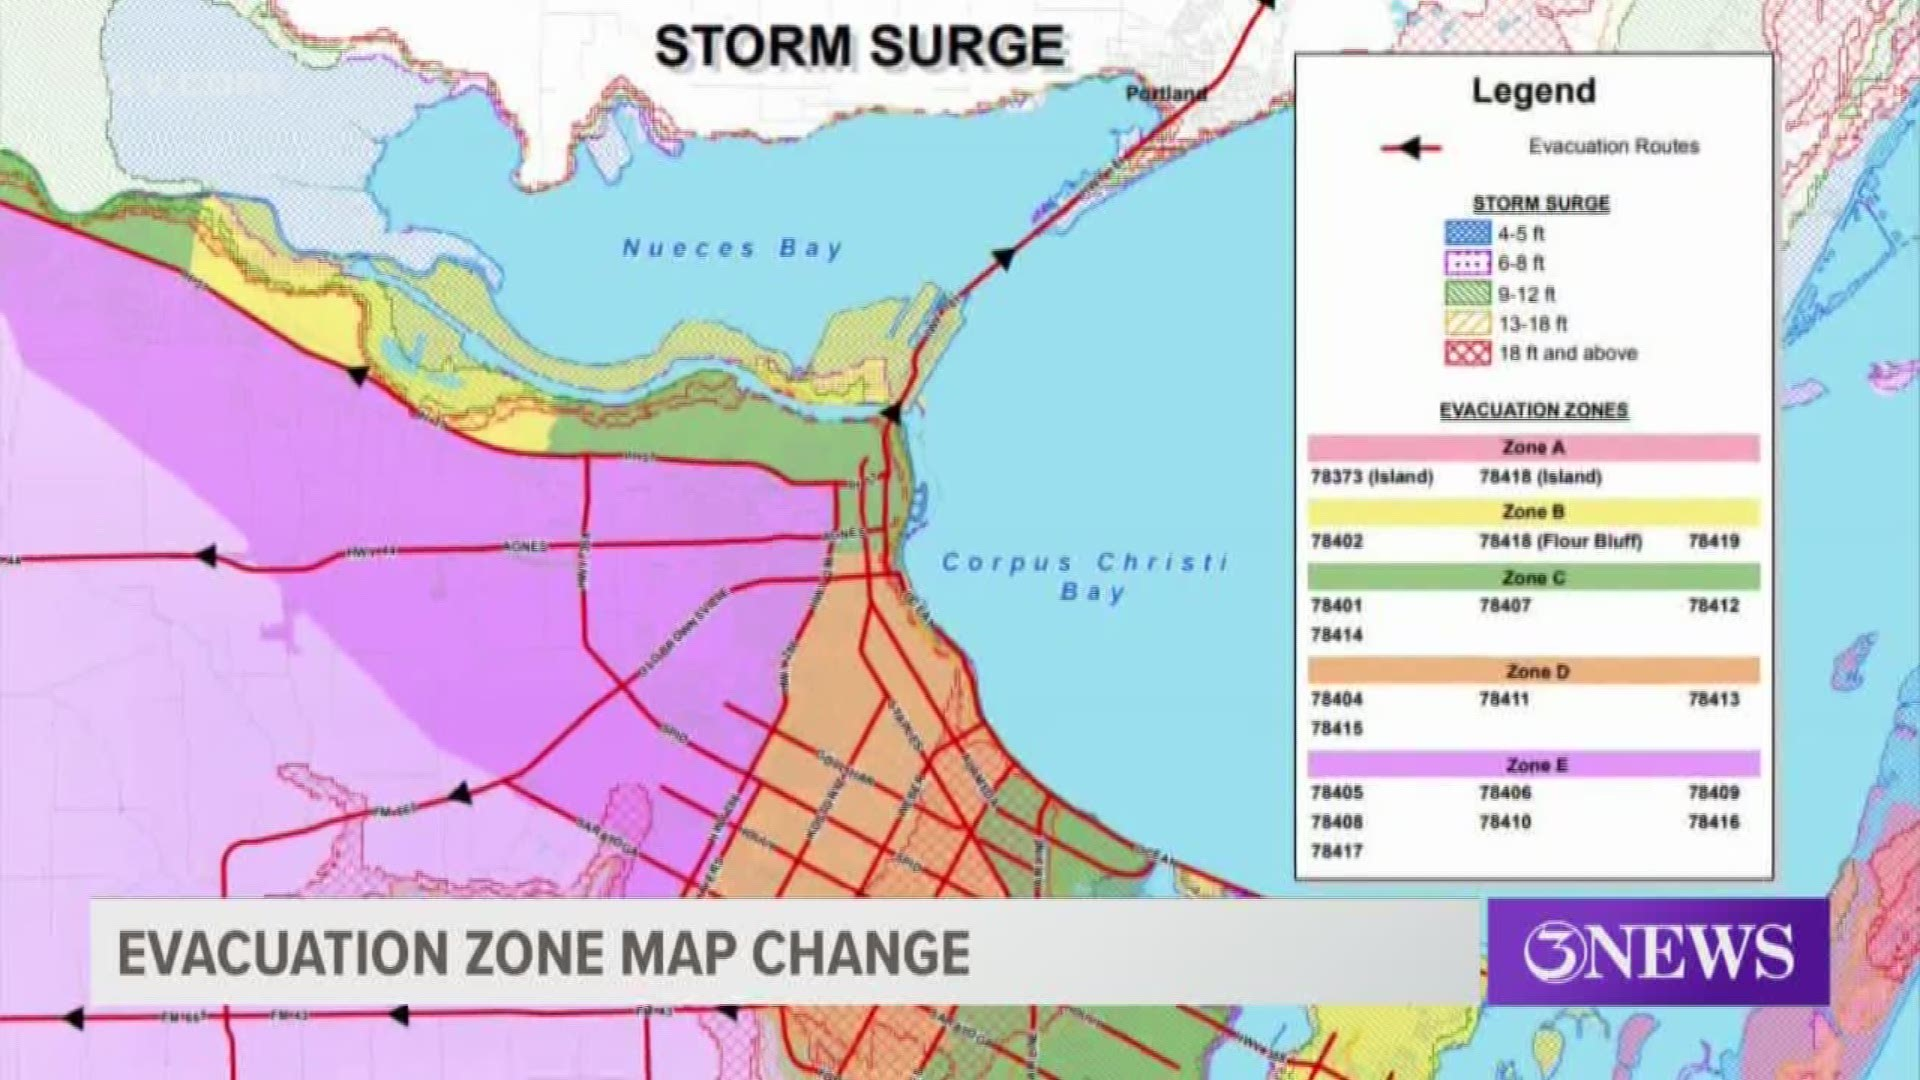 Corpus Christi Texas Map Changes to the Hurricane Evacuation Zone Maps for Corpus Christi